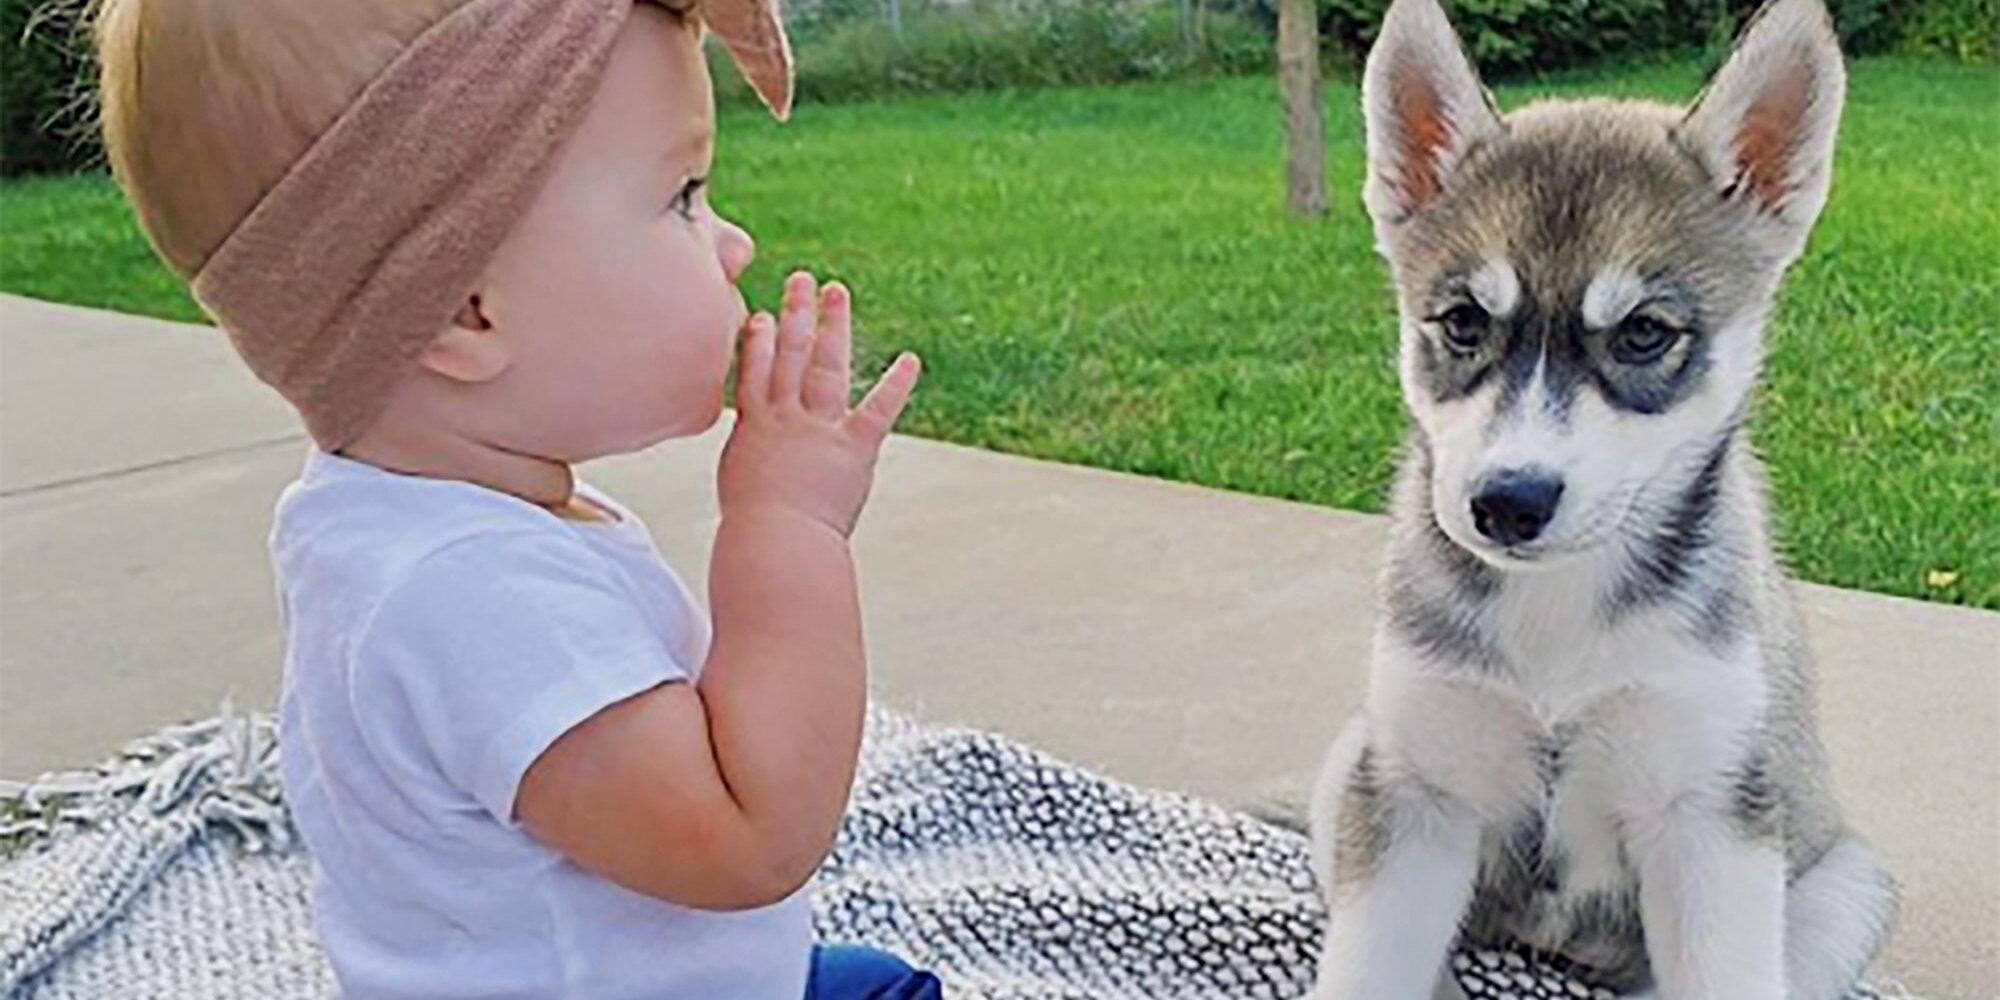 This Adorable Baby and Her Husky Puppy Are the Cutest Thing We've Ever Seen